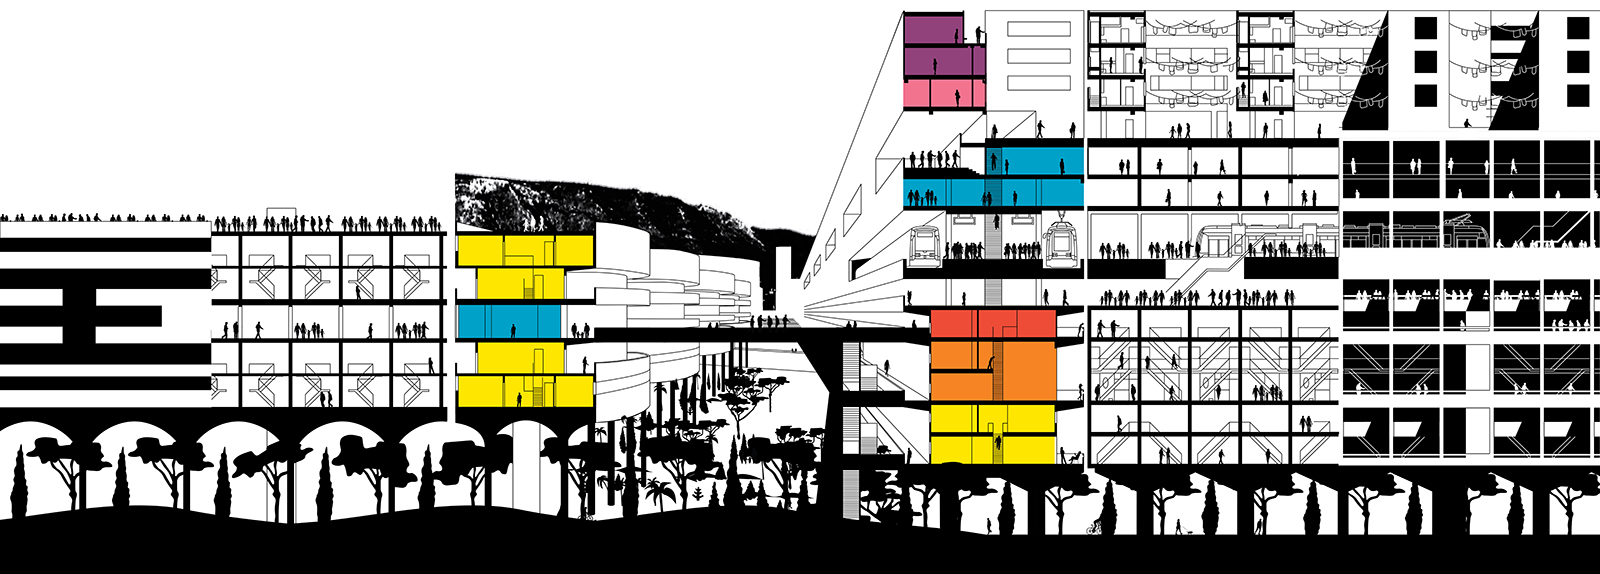 Section perspective of the central space created between the two infrastructural HEL bars with porous public levels